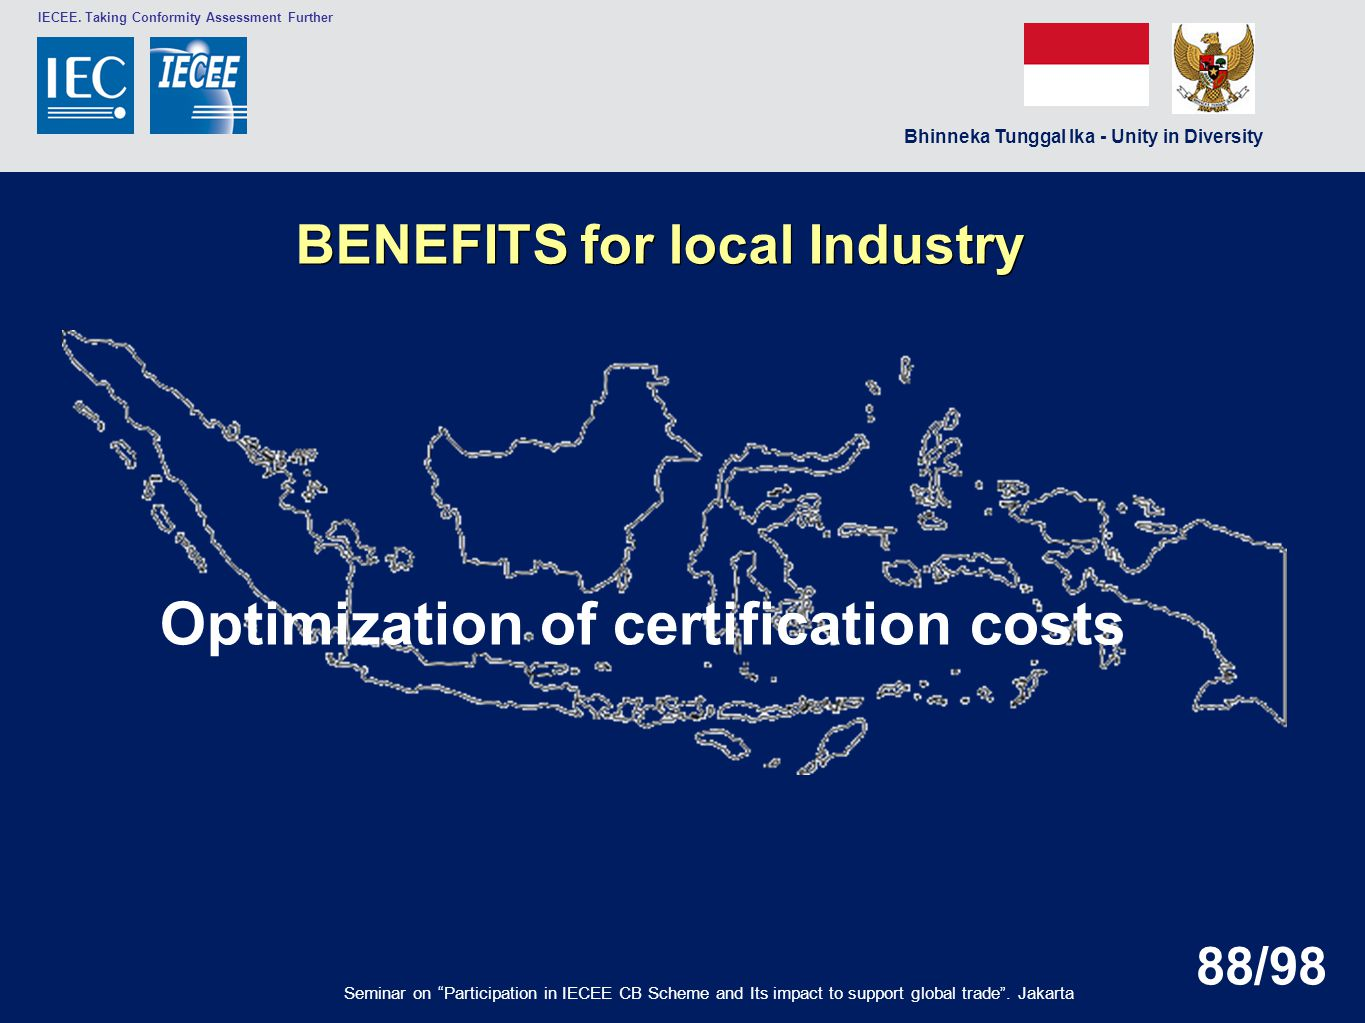 Optimization of certification costs